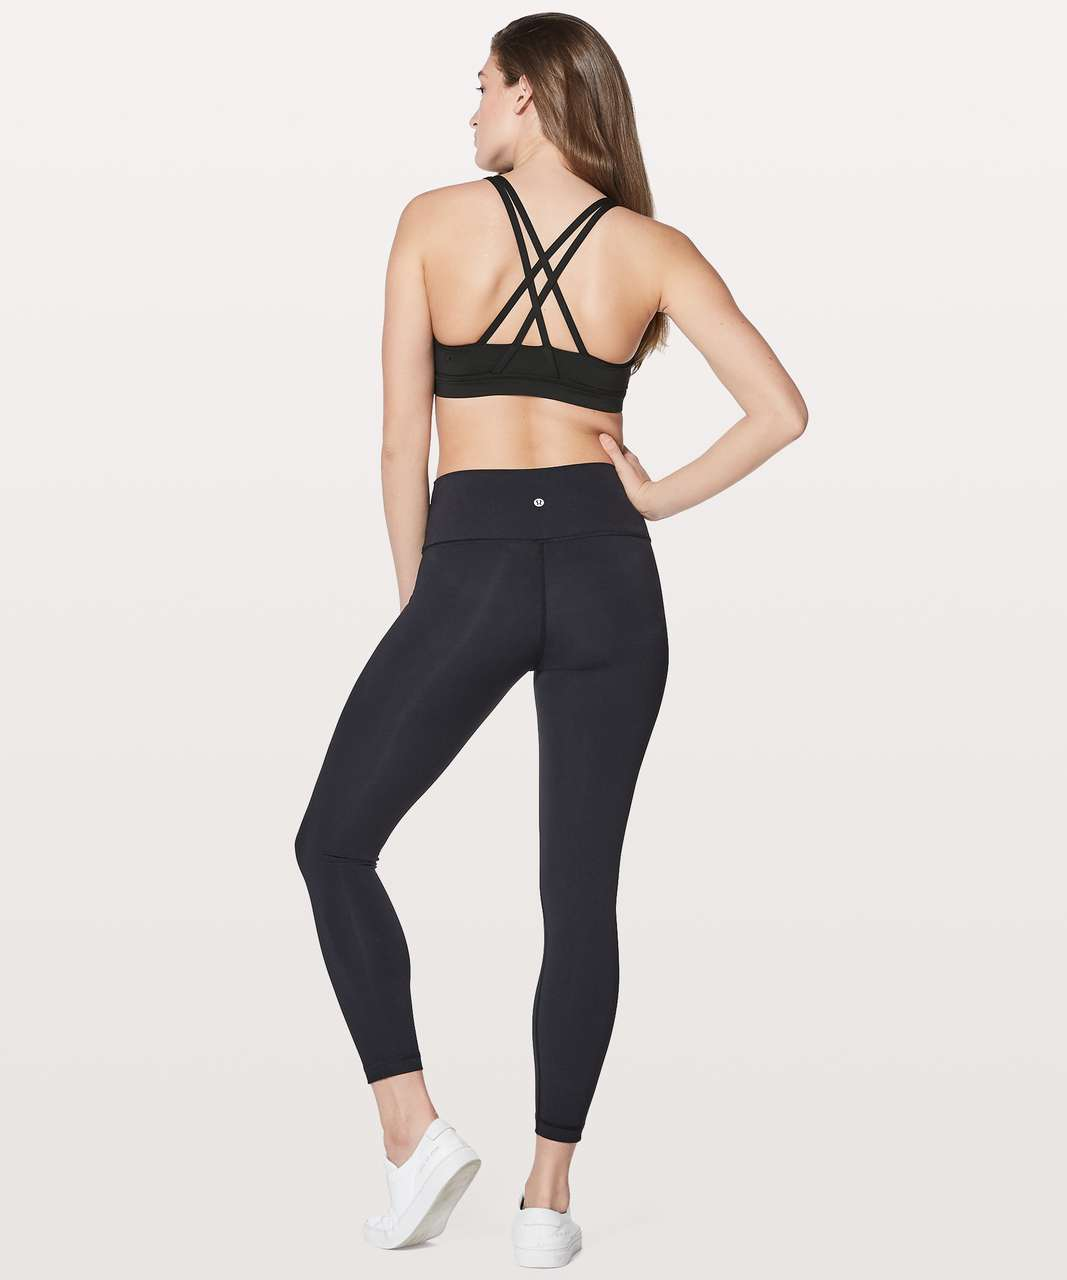 Lululemon Energy Bra Laced - Black